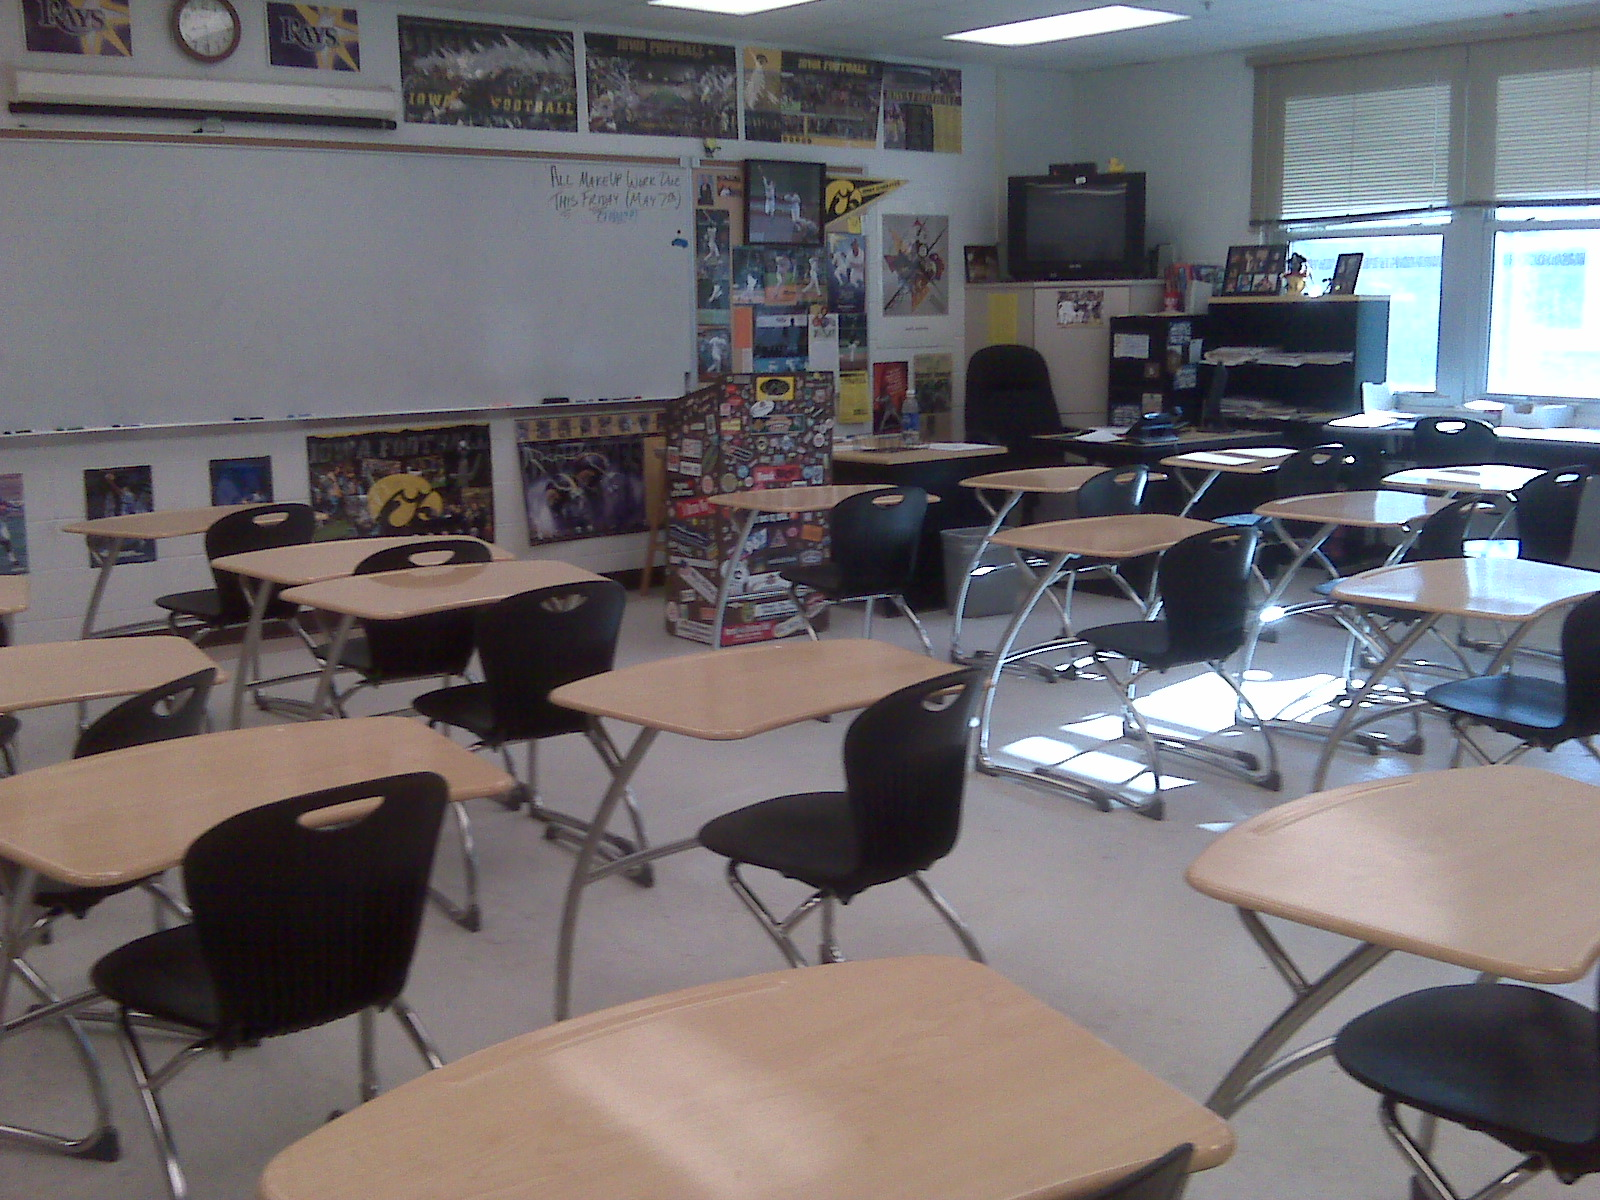 Classroom Decor Social Studies : File pirate social studies class g wikimedia commons